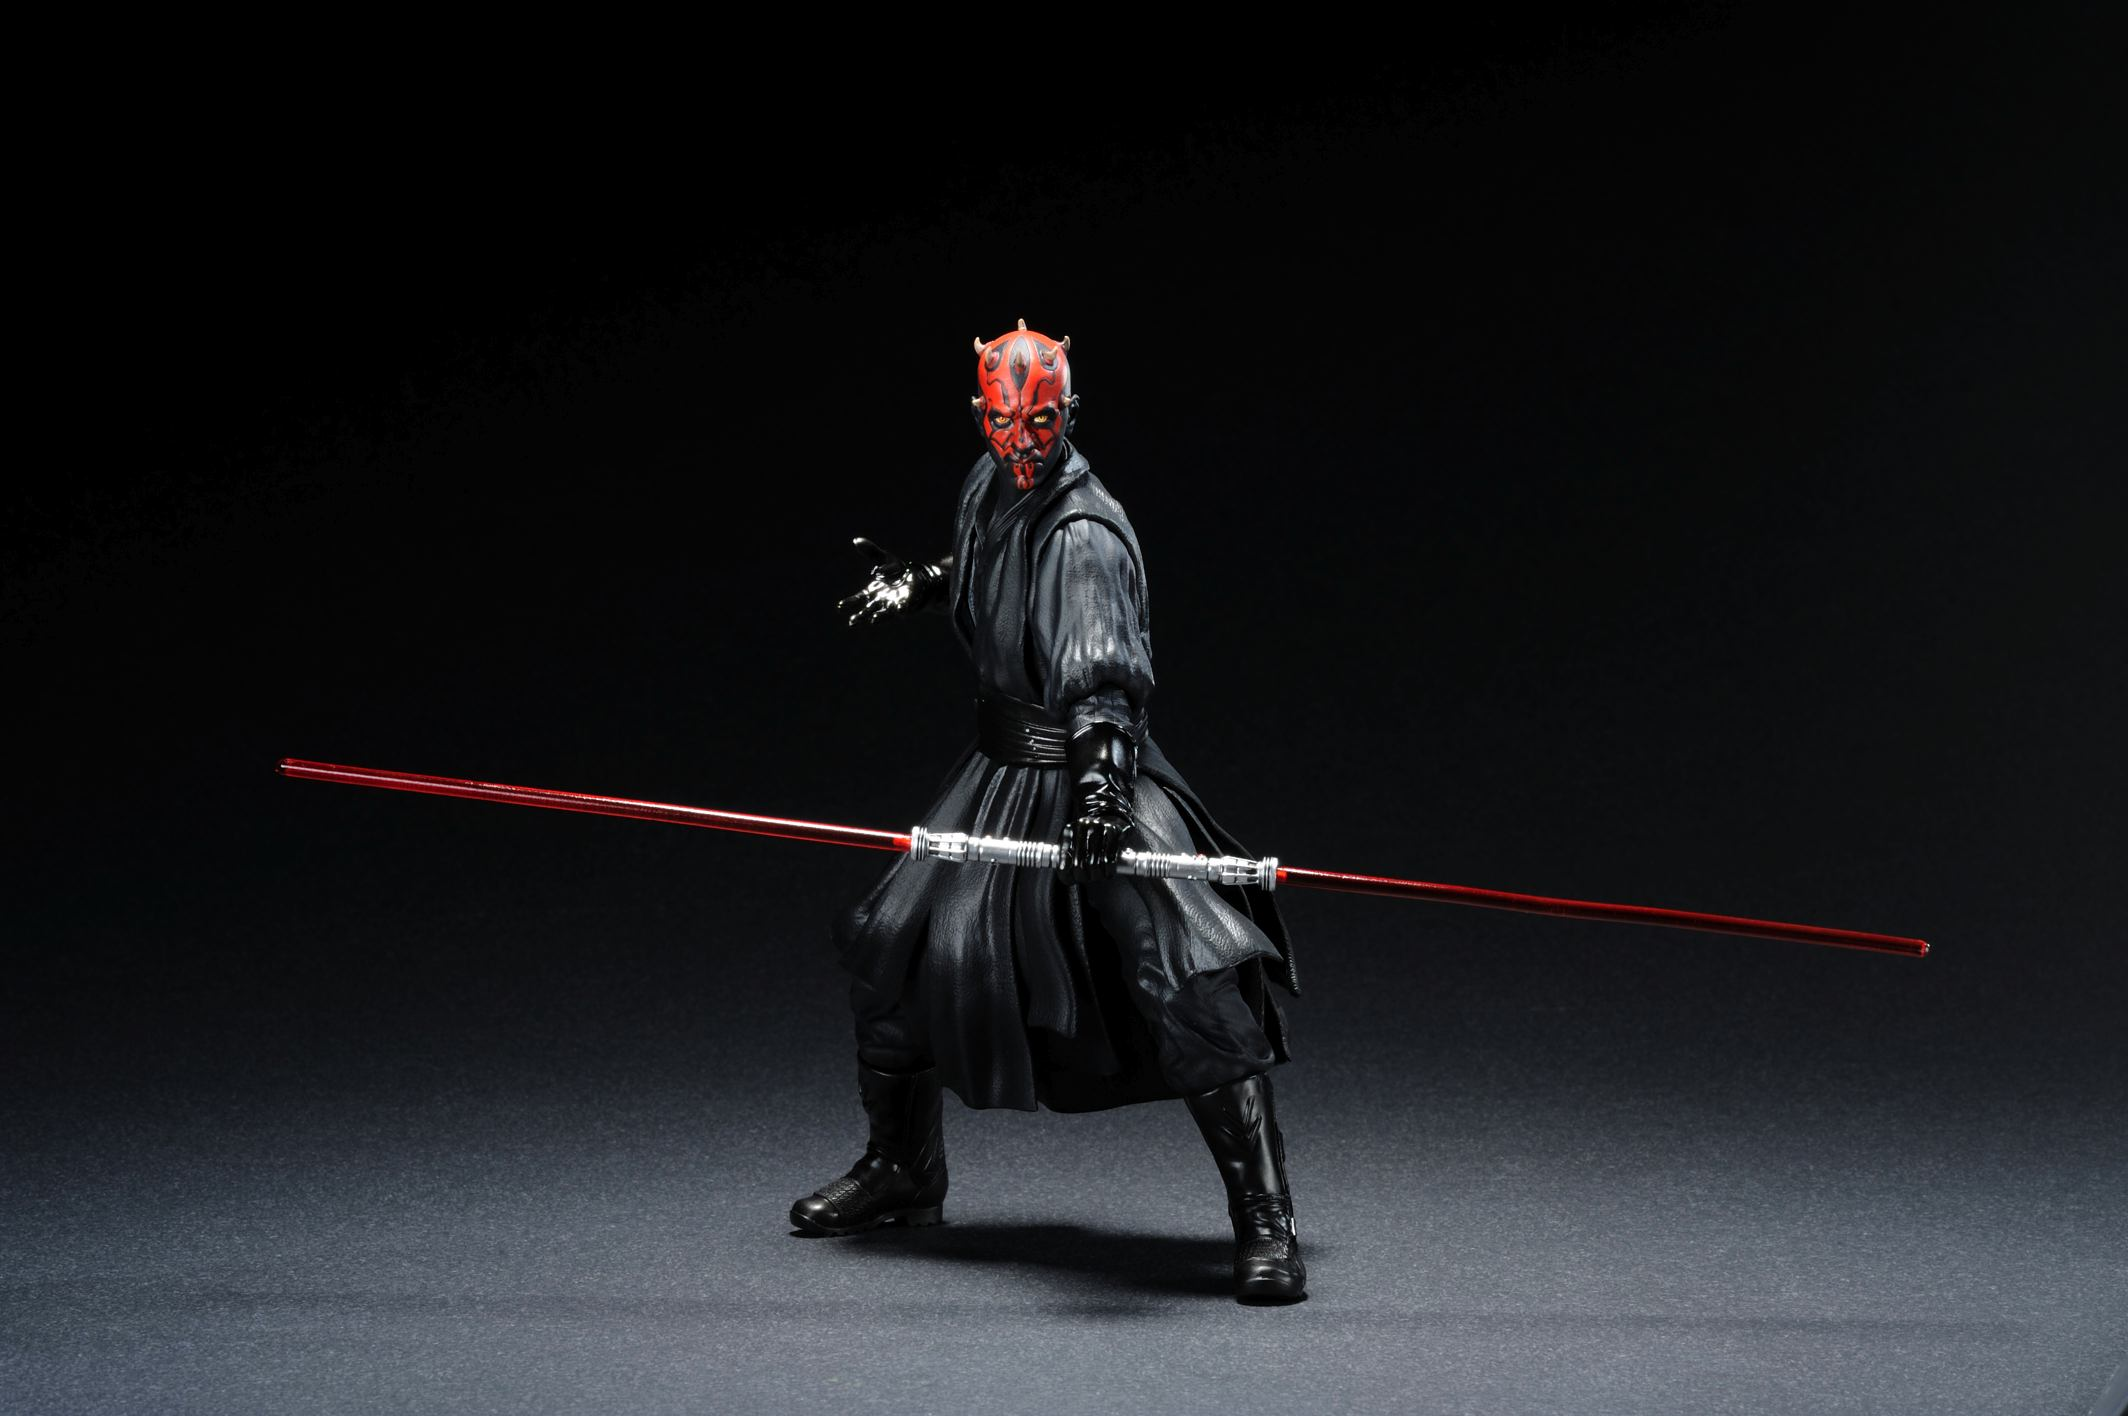 Kotobukiya Star Wars Darth Maul ArtFX+ Statue